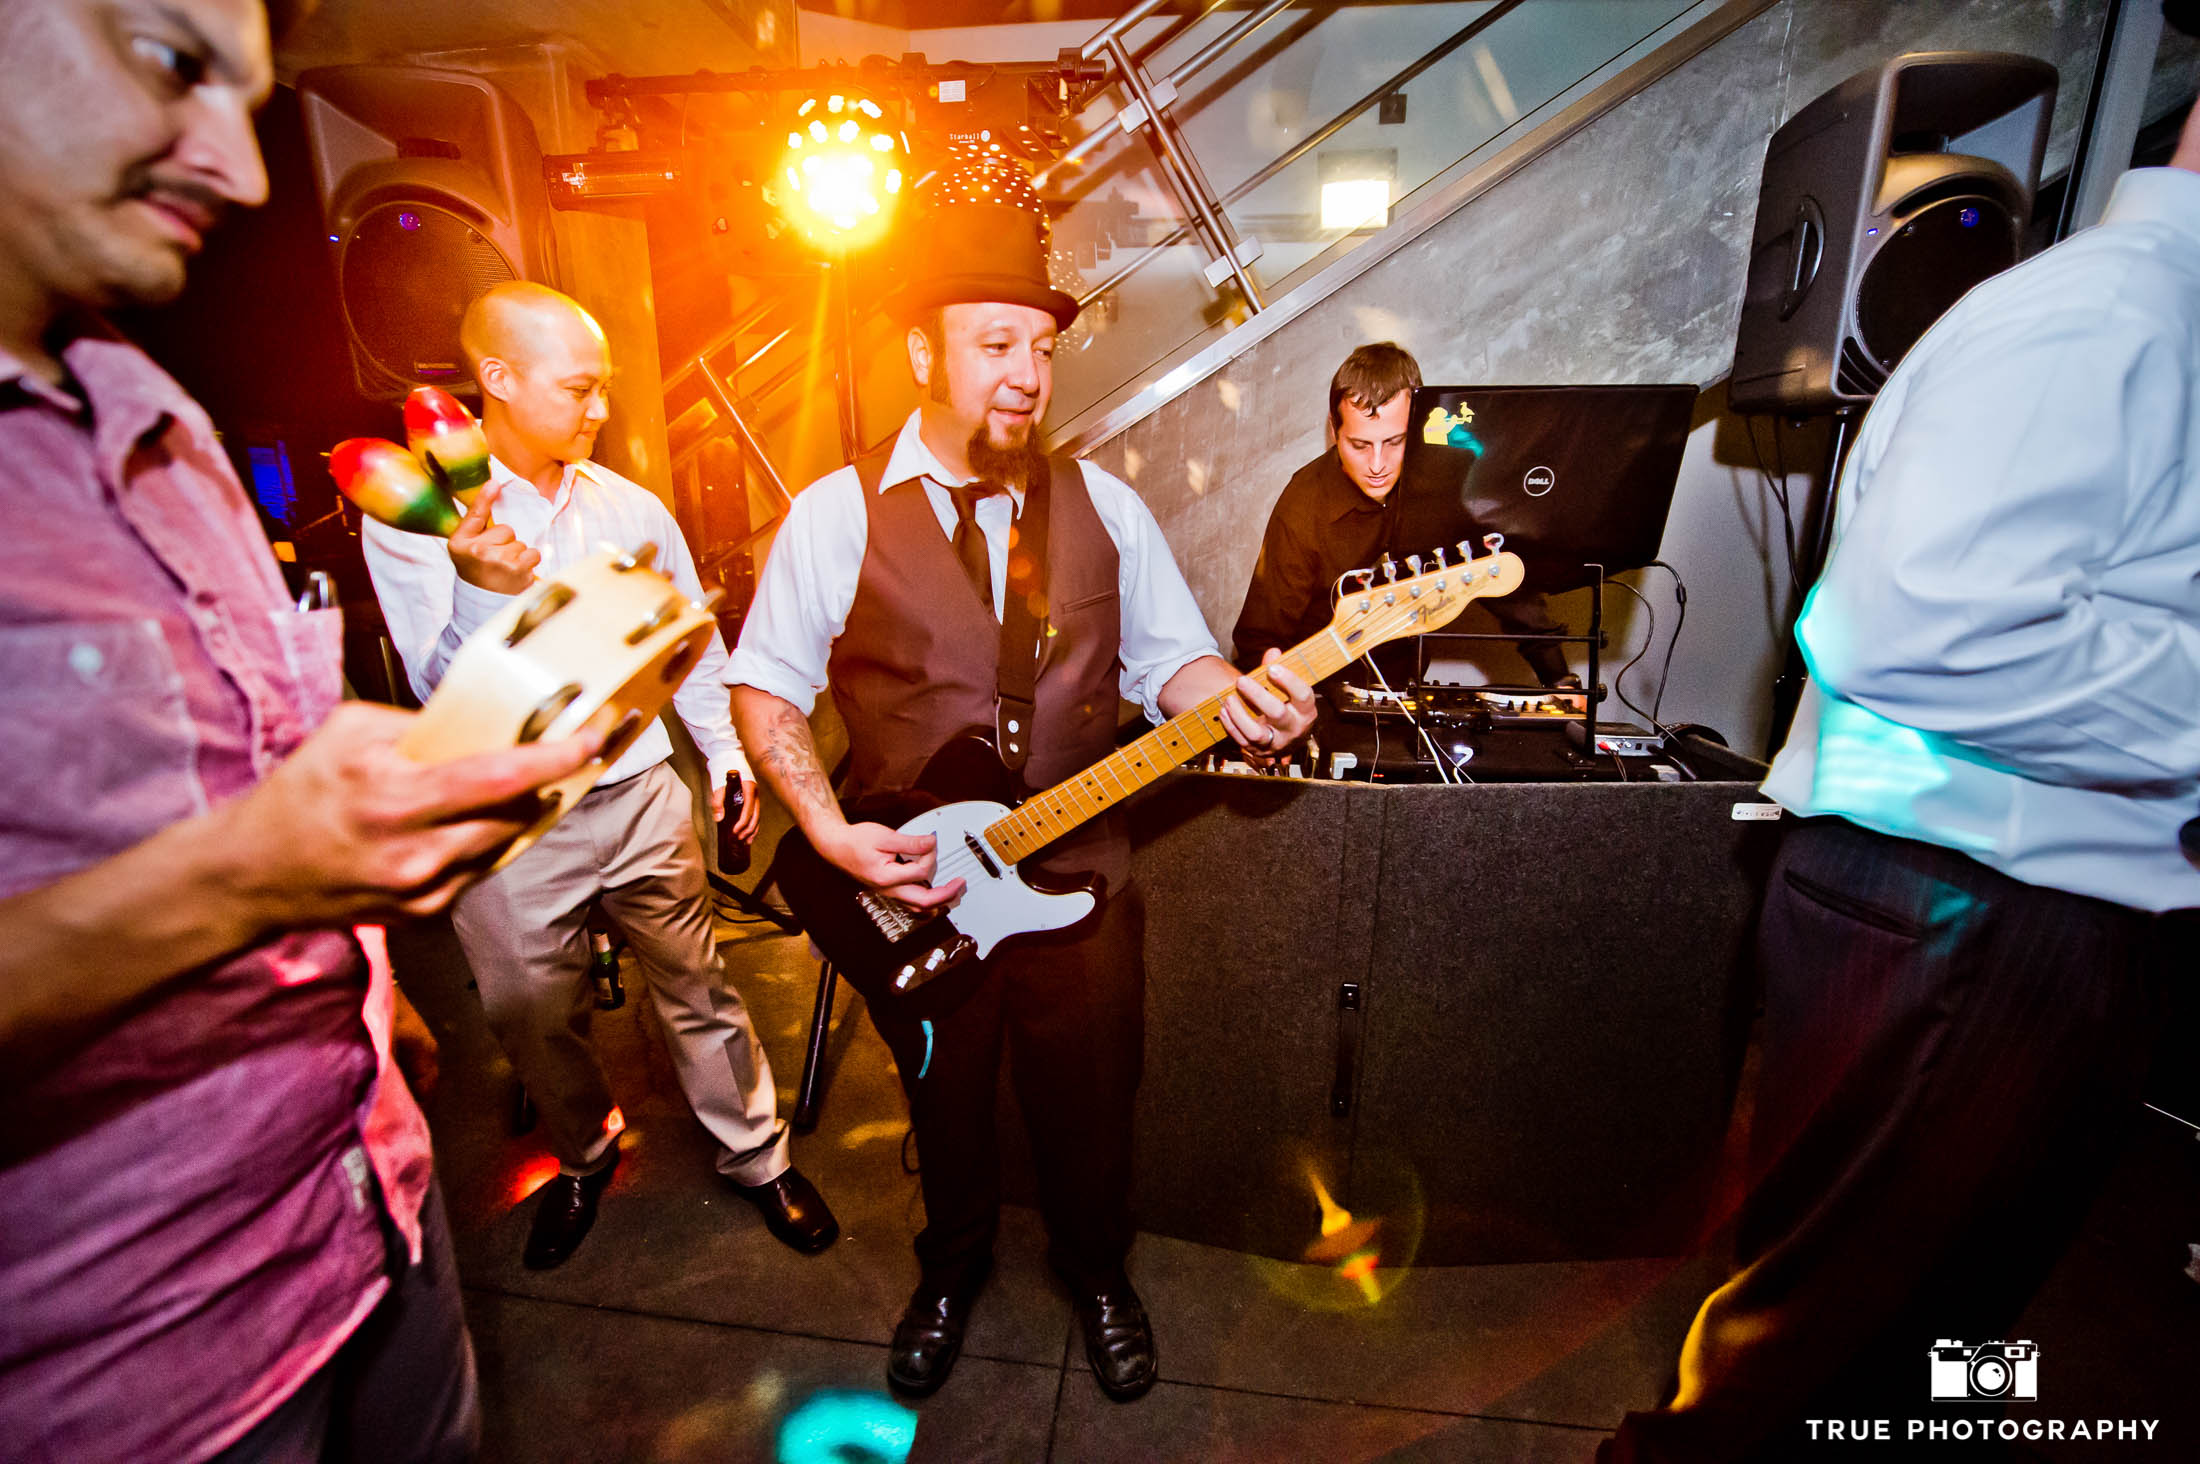 Live band with guitarist playing during wedding reception